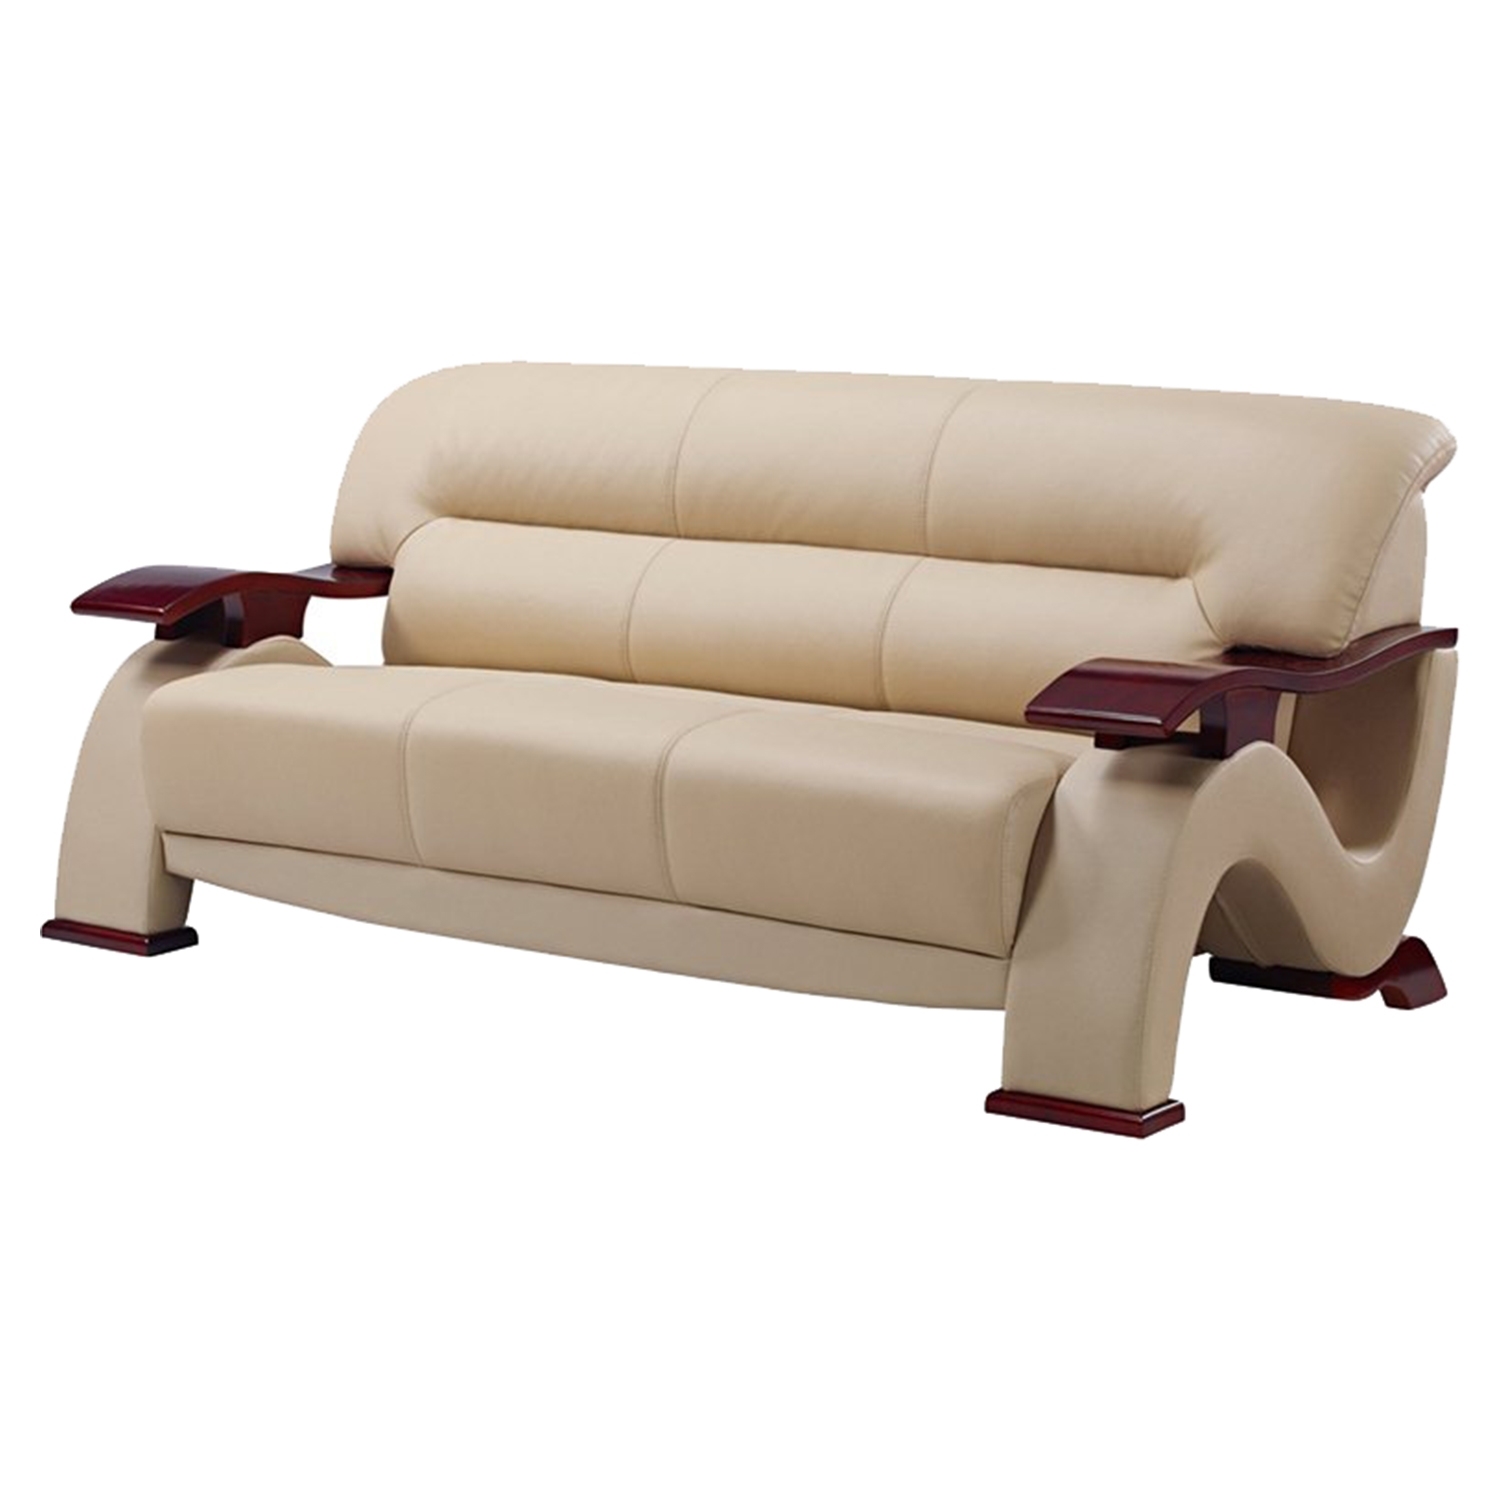 Valerie Leather Sofa - Cappuccino